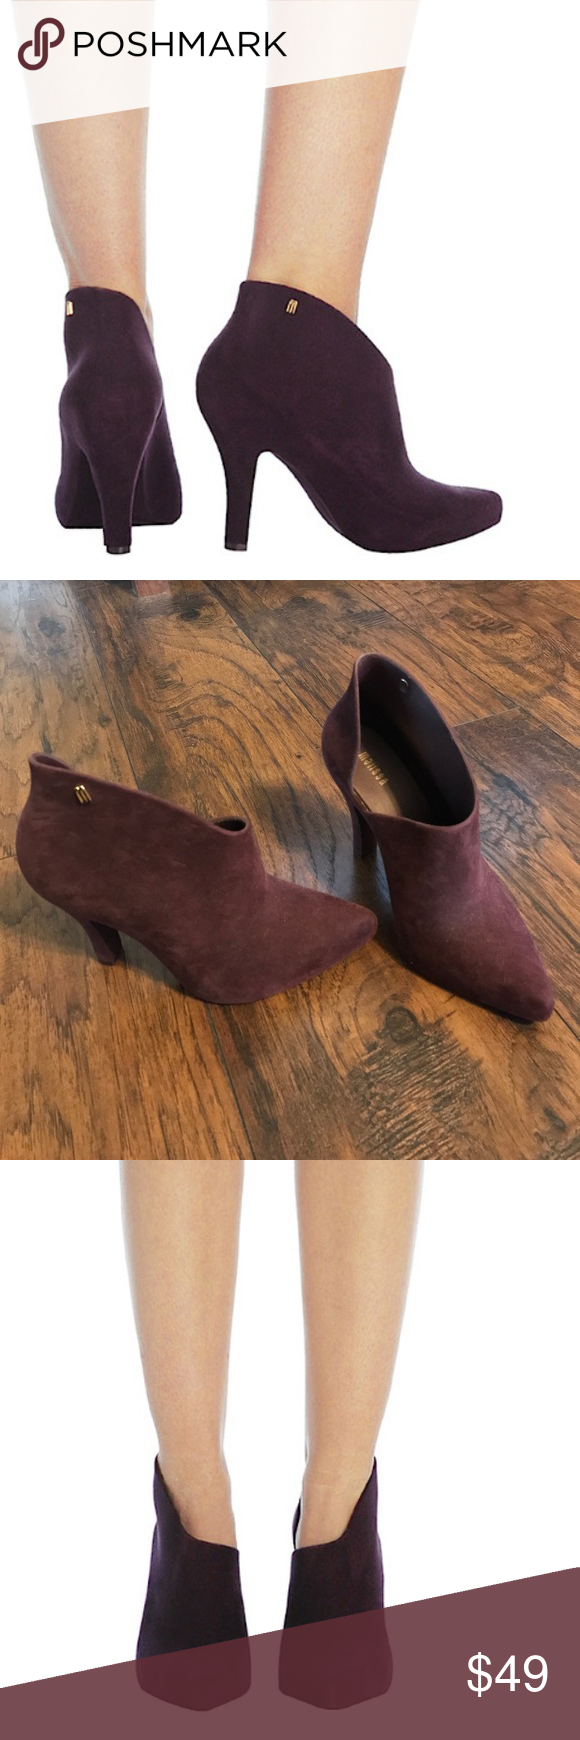 Melissa vegan drama flocked waterproof bootie Dark plum color, US size 5, very gently used! Melissa Shoes Ankle Boots & Booties